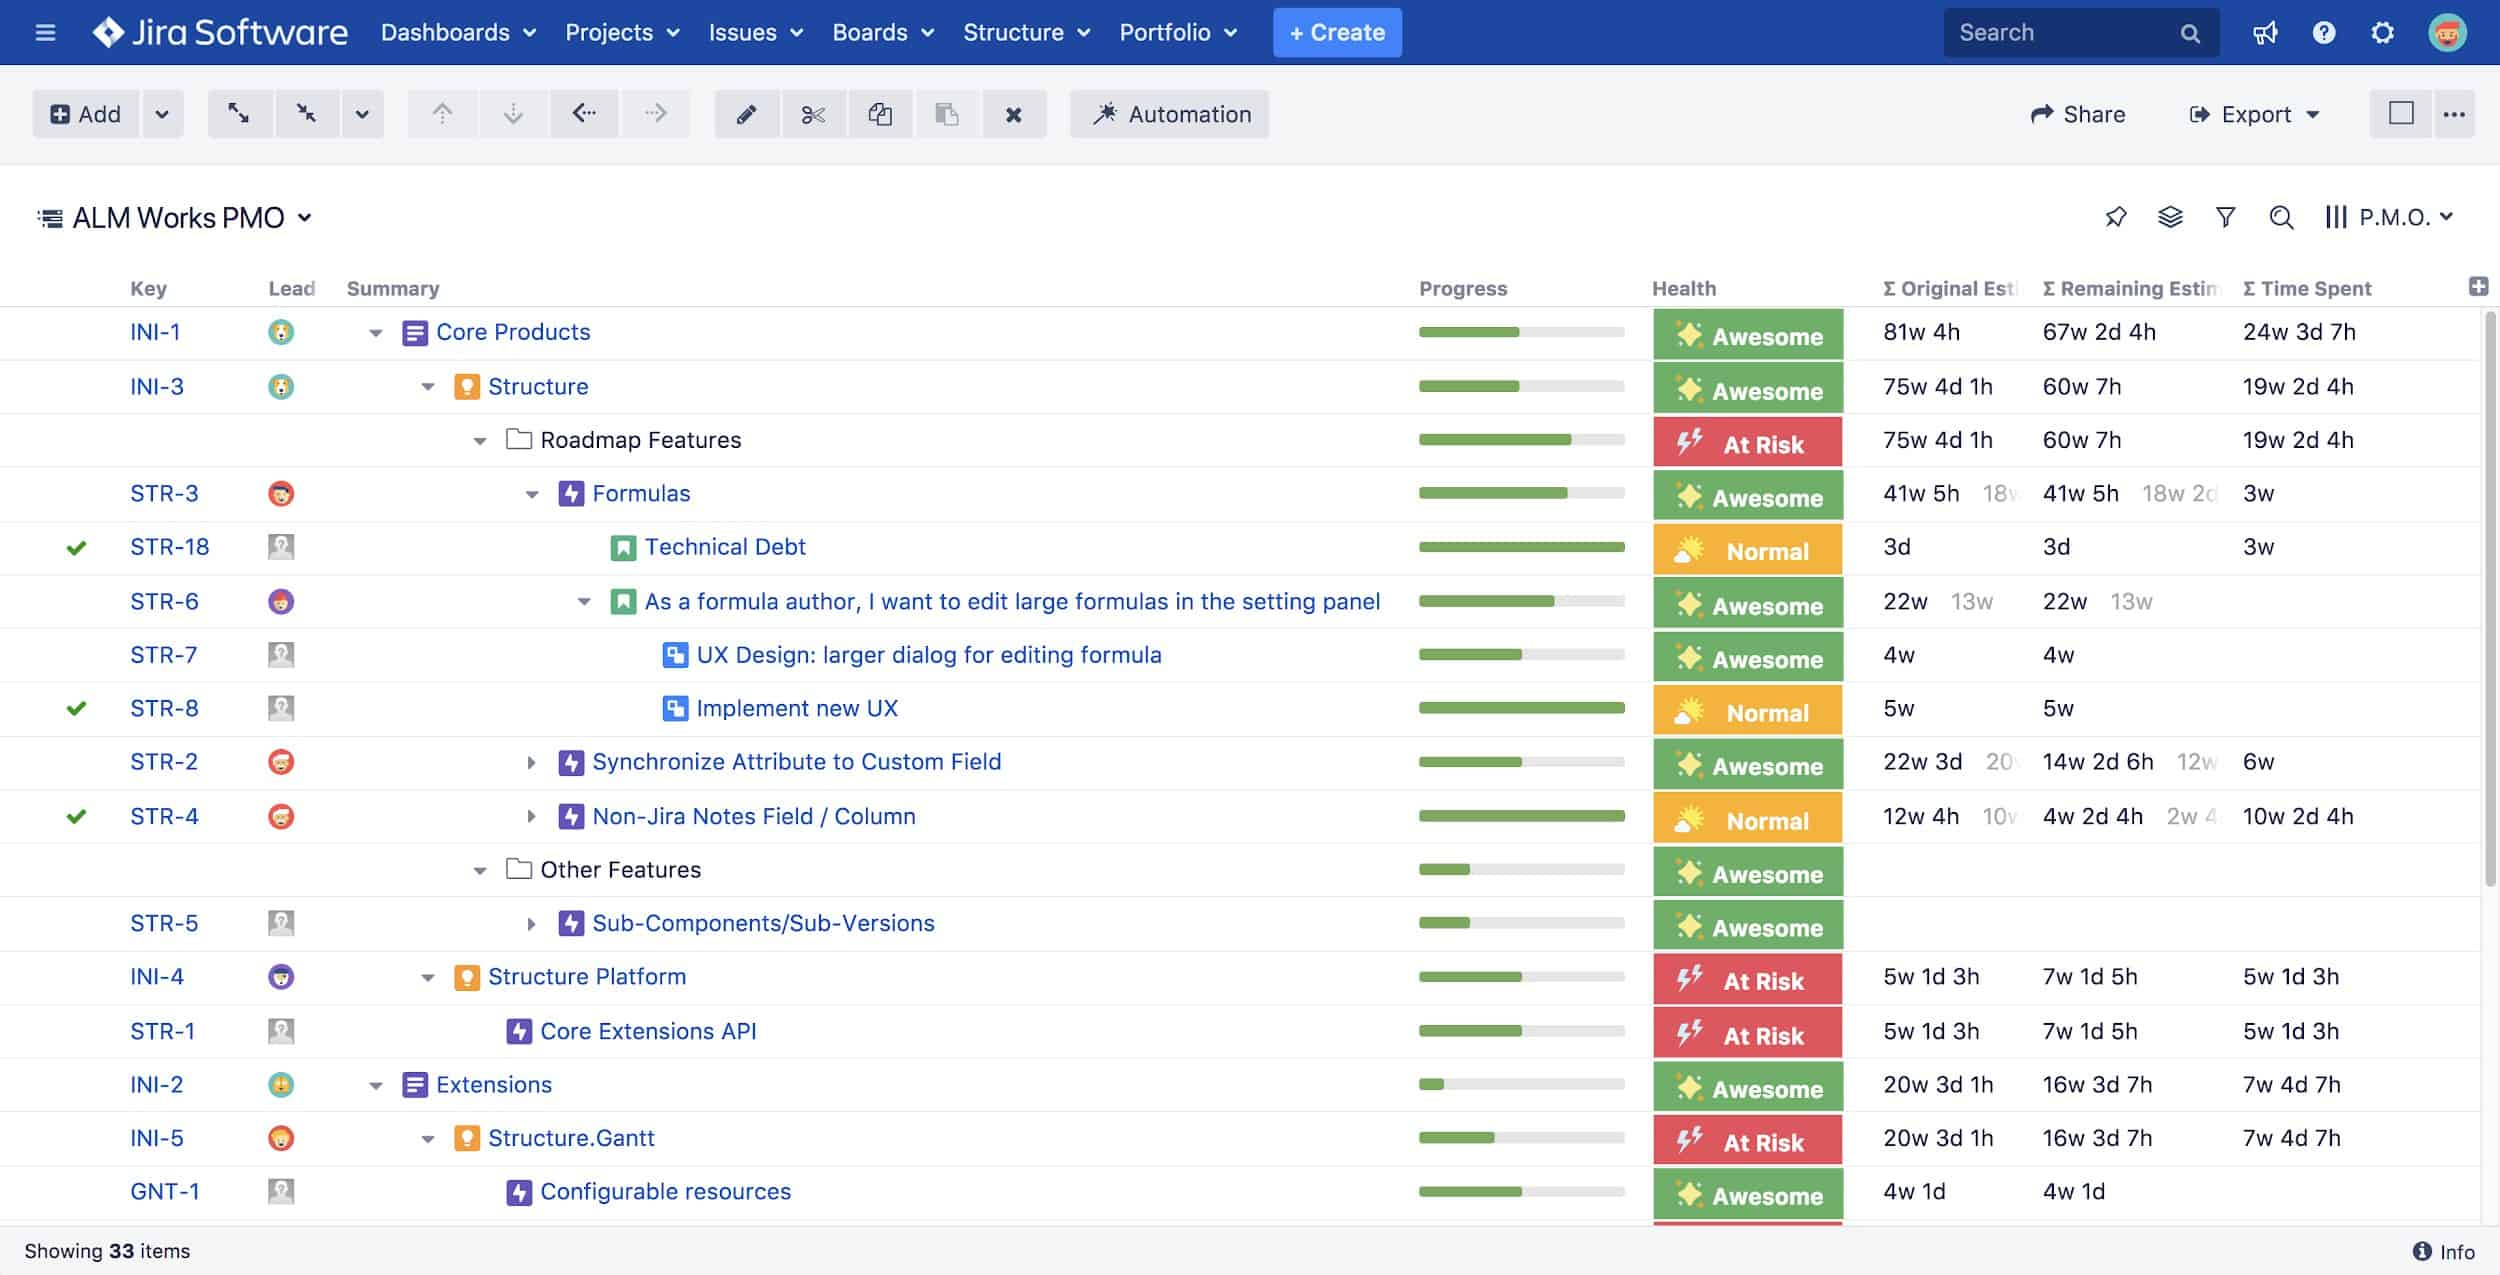 Structure for Jira view